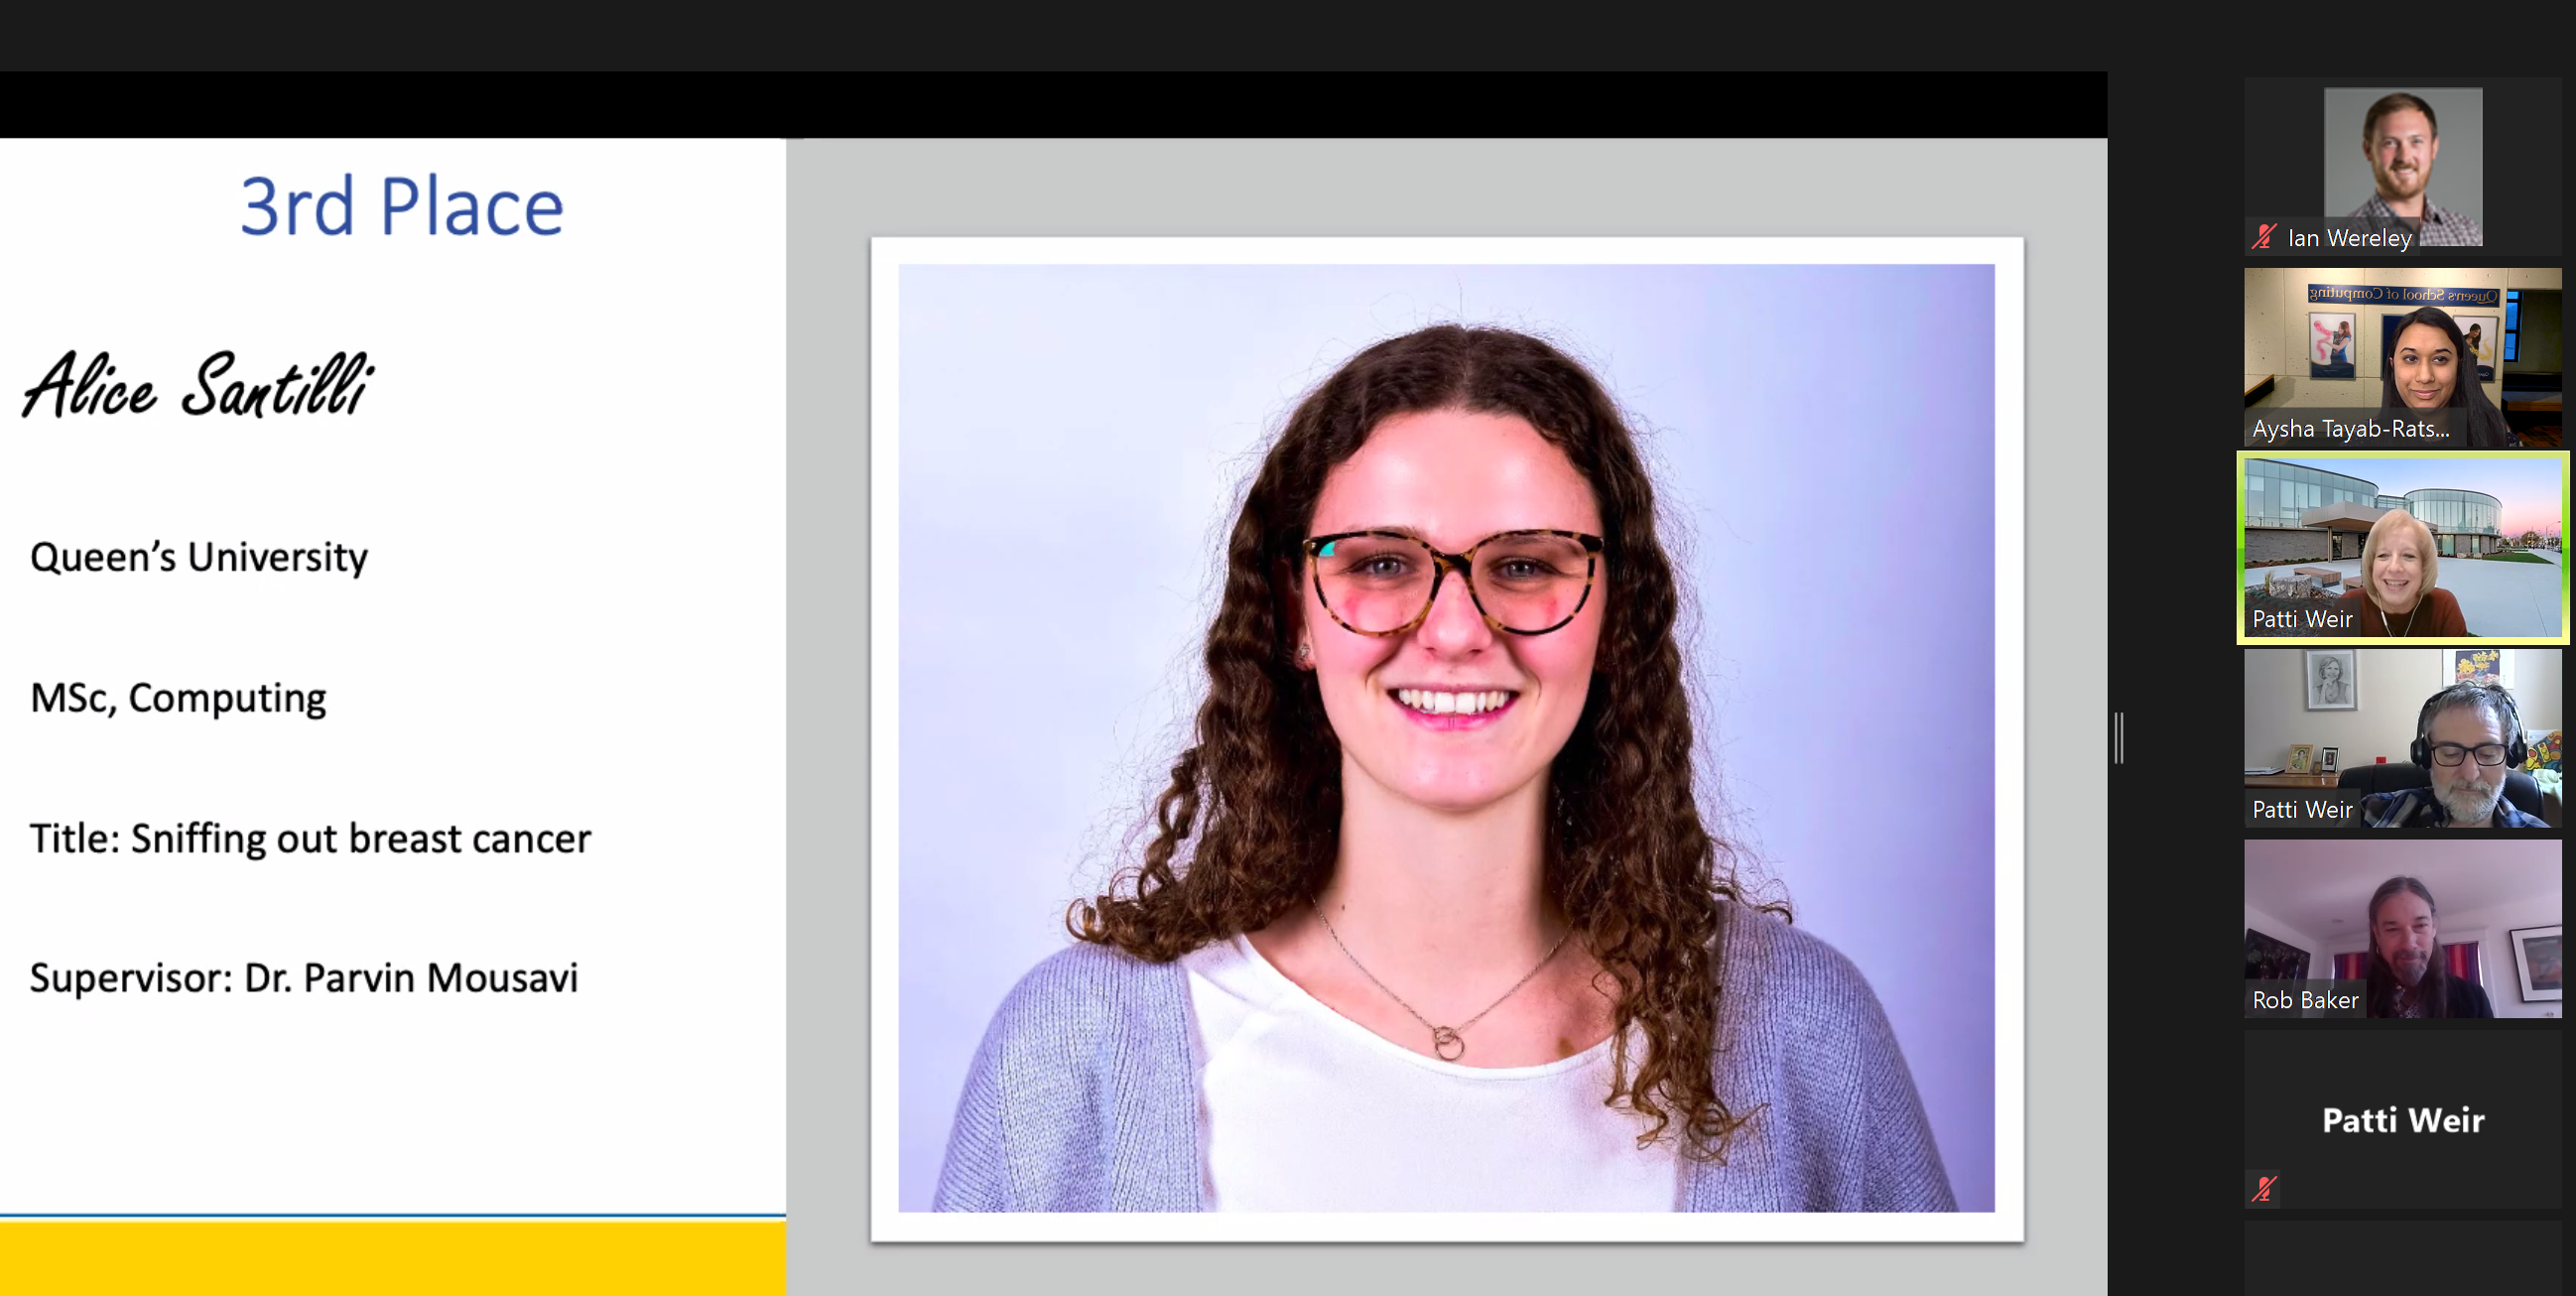 Alice Santilli has been selected for 3rd place at the Ontario Regional 3MT Virtual Competition 2020